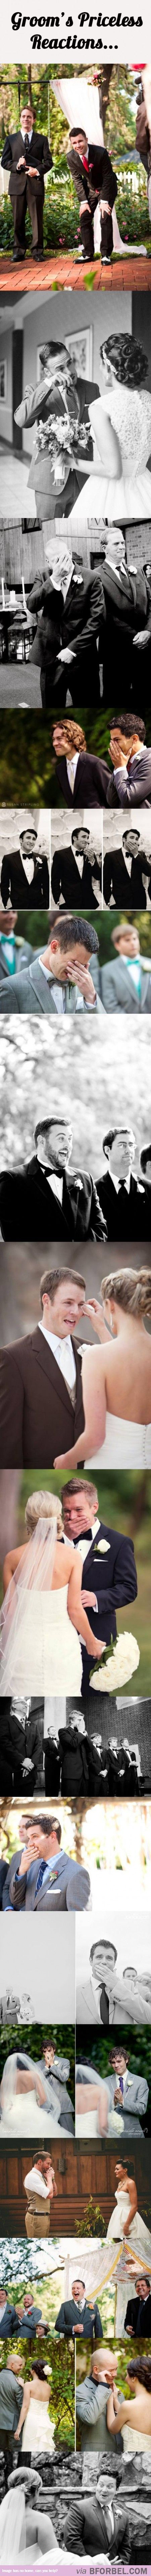 If my husband doesn't react like this, I'm turning around.